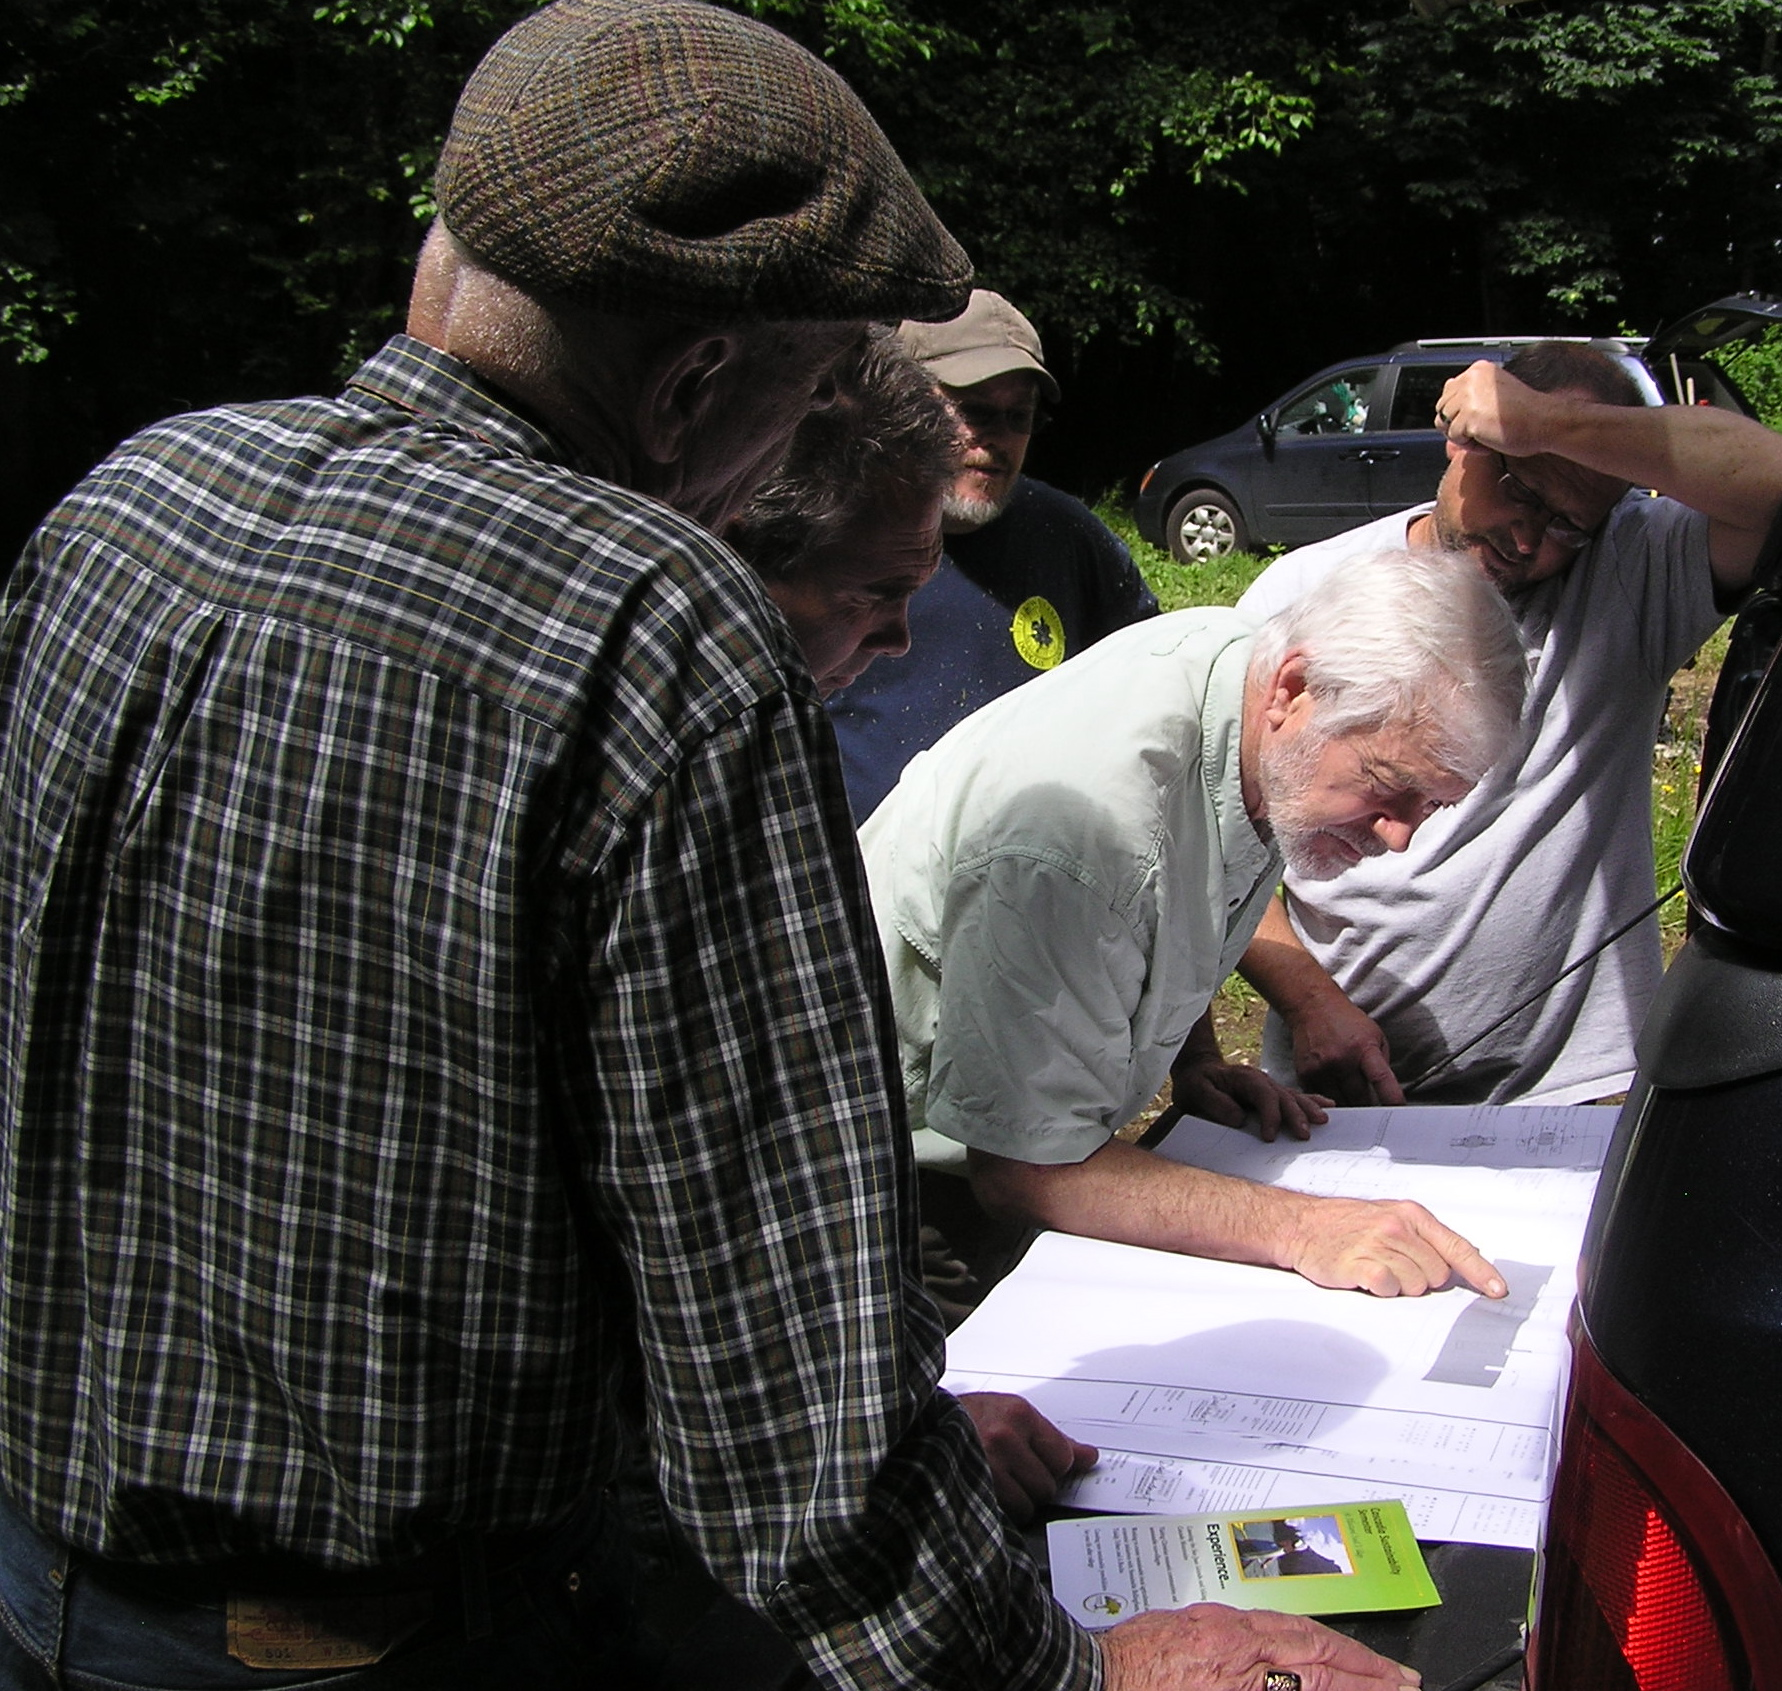 Checking Out Plans for the Mustard Seed Village